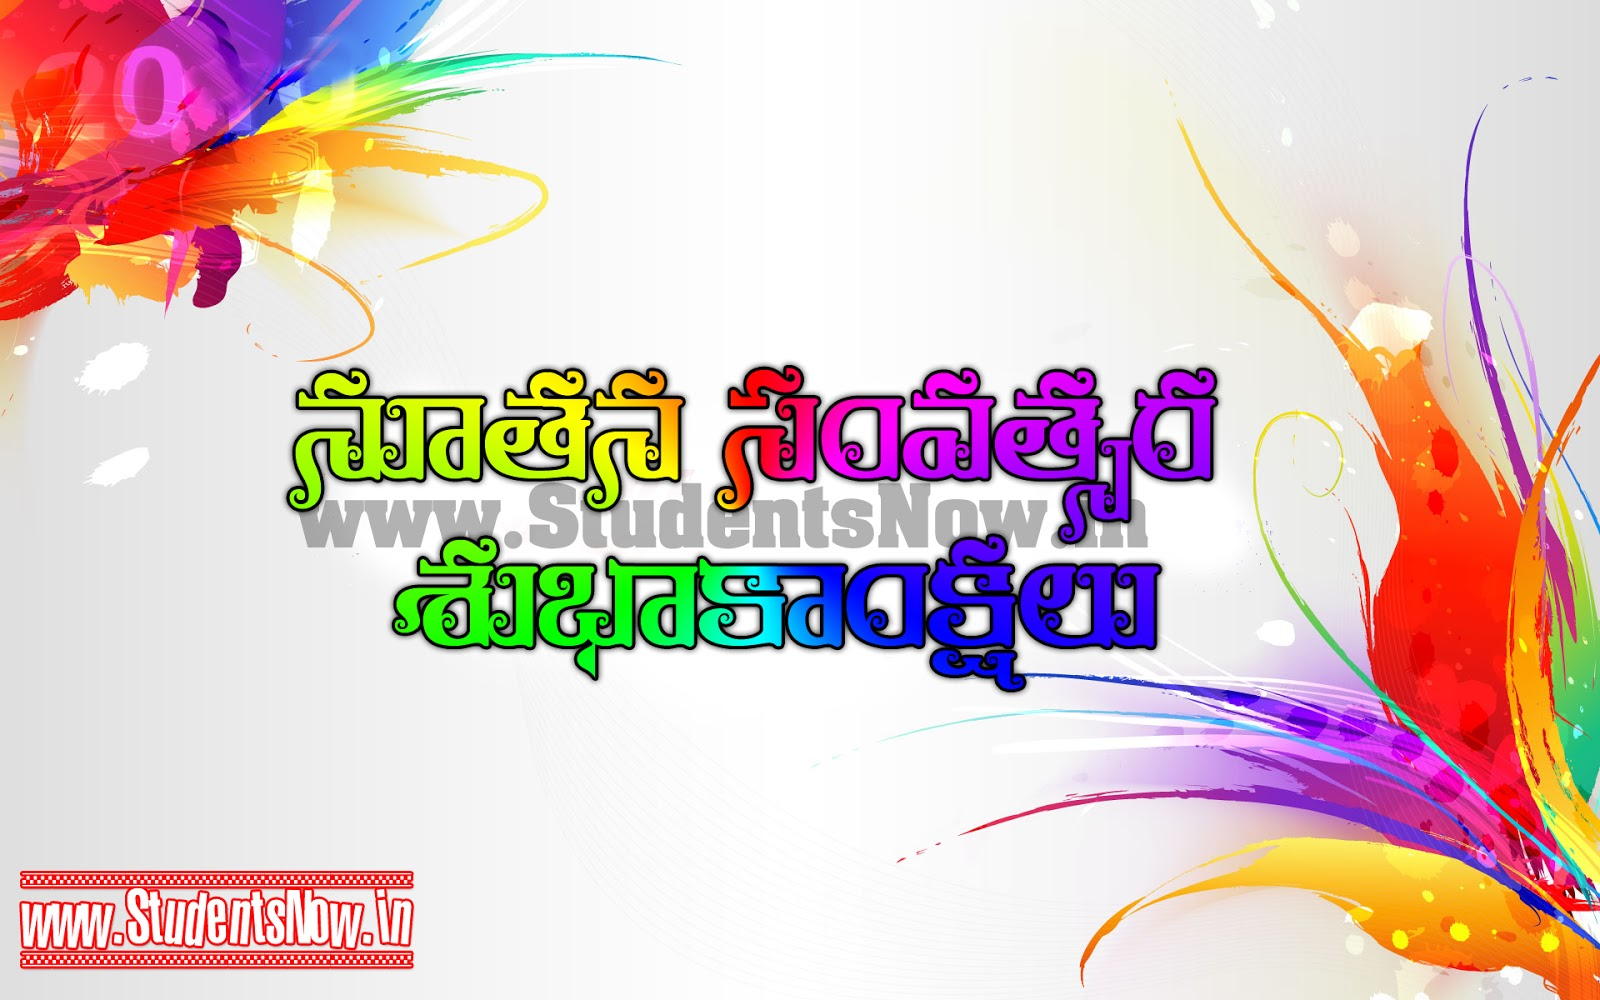 http://4.bp.blogspot.com/-EcsuwbuglPs/ULte2ReEjFI/AAAAAAAAPyY/uUstqZlEg4U/s1600/New+Year+Greetings+in+Telugu+_StudentsNow.in.6.jpg